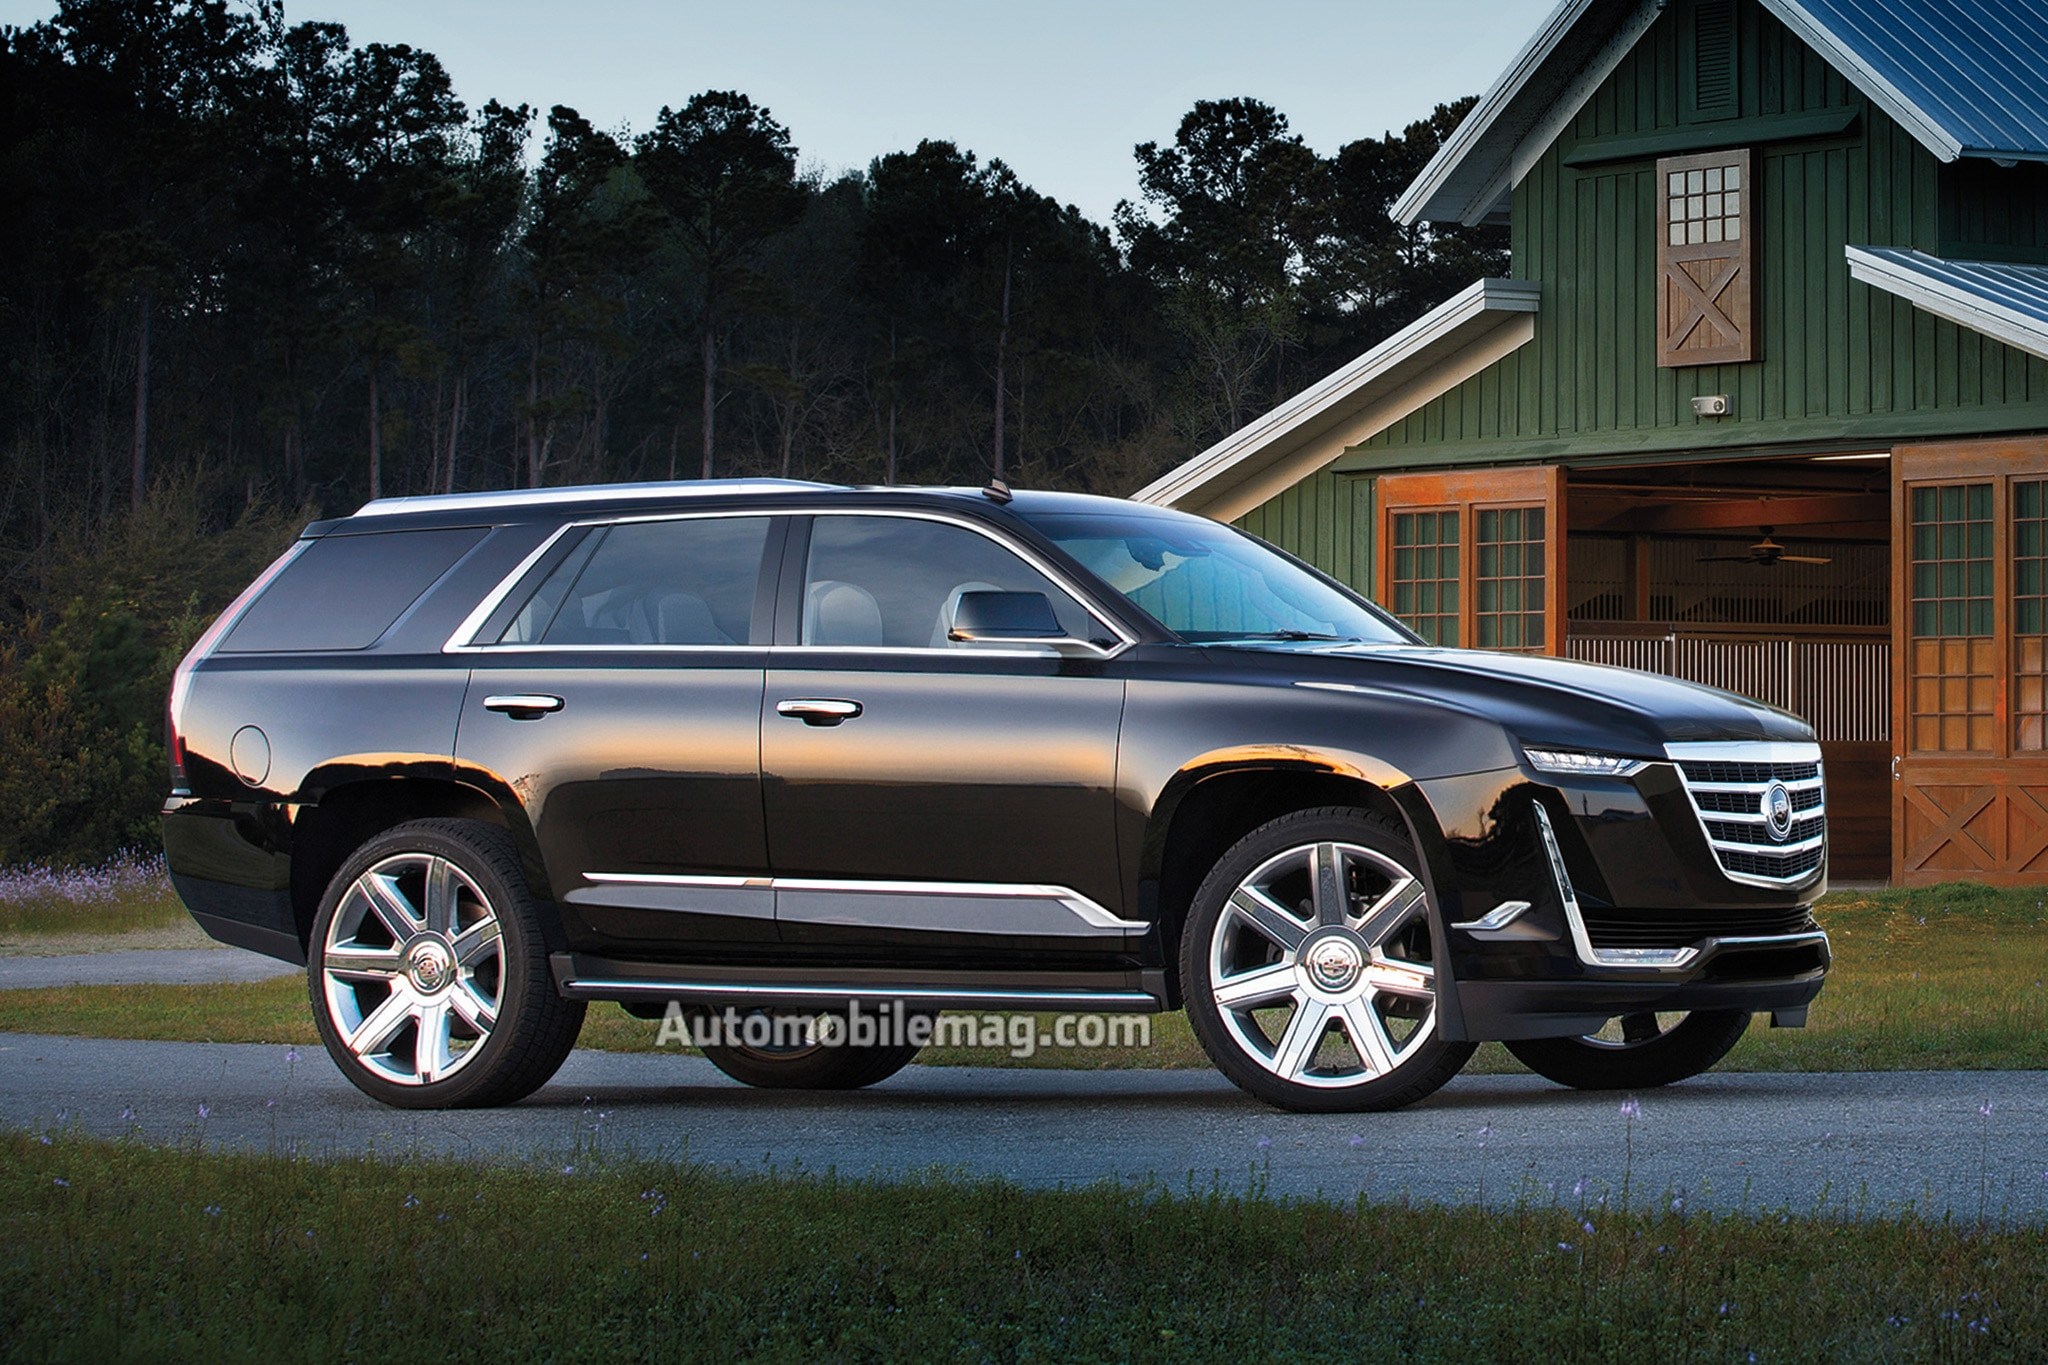 Latest Cadillac Escalade >> 2020 Cadillac Escalade and Escalade ESV: What to Expect | Automobile Magazine